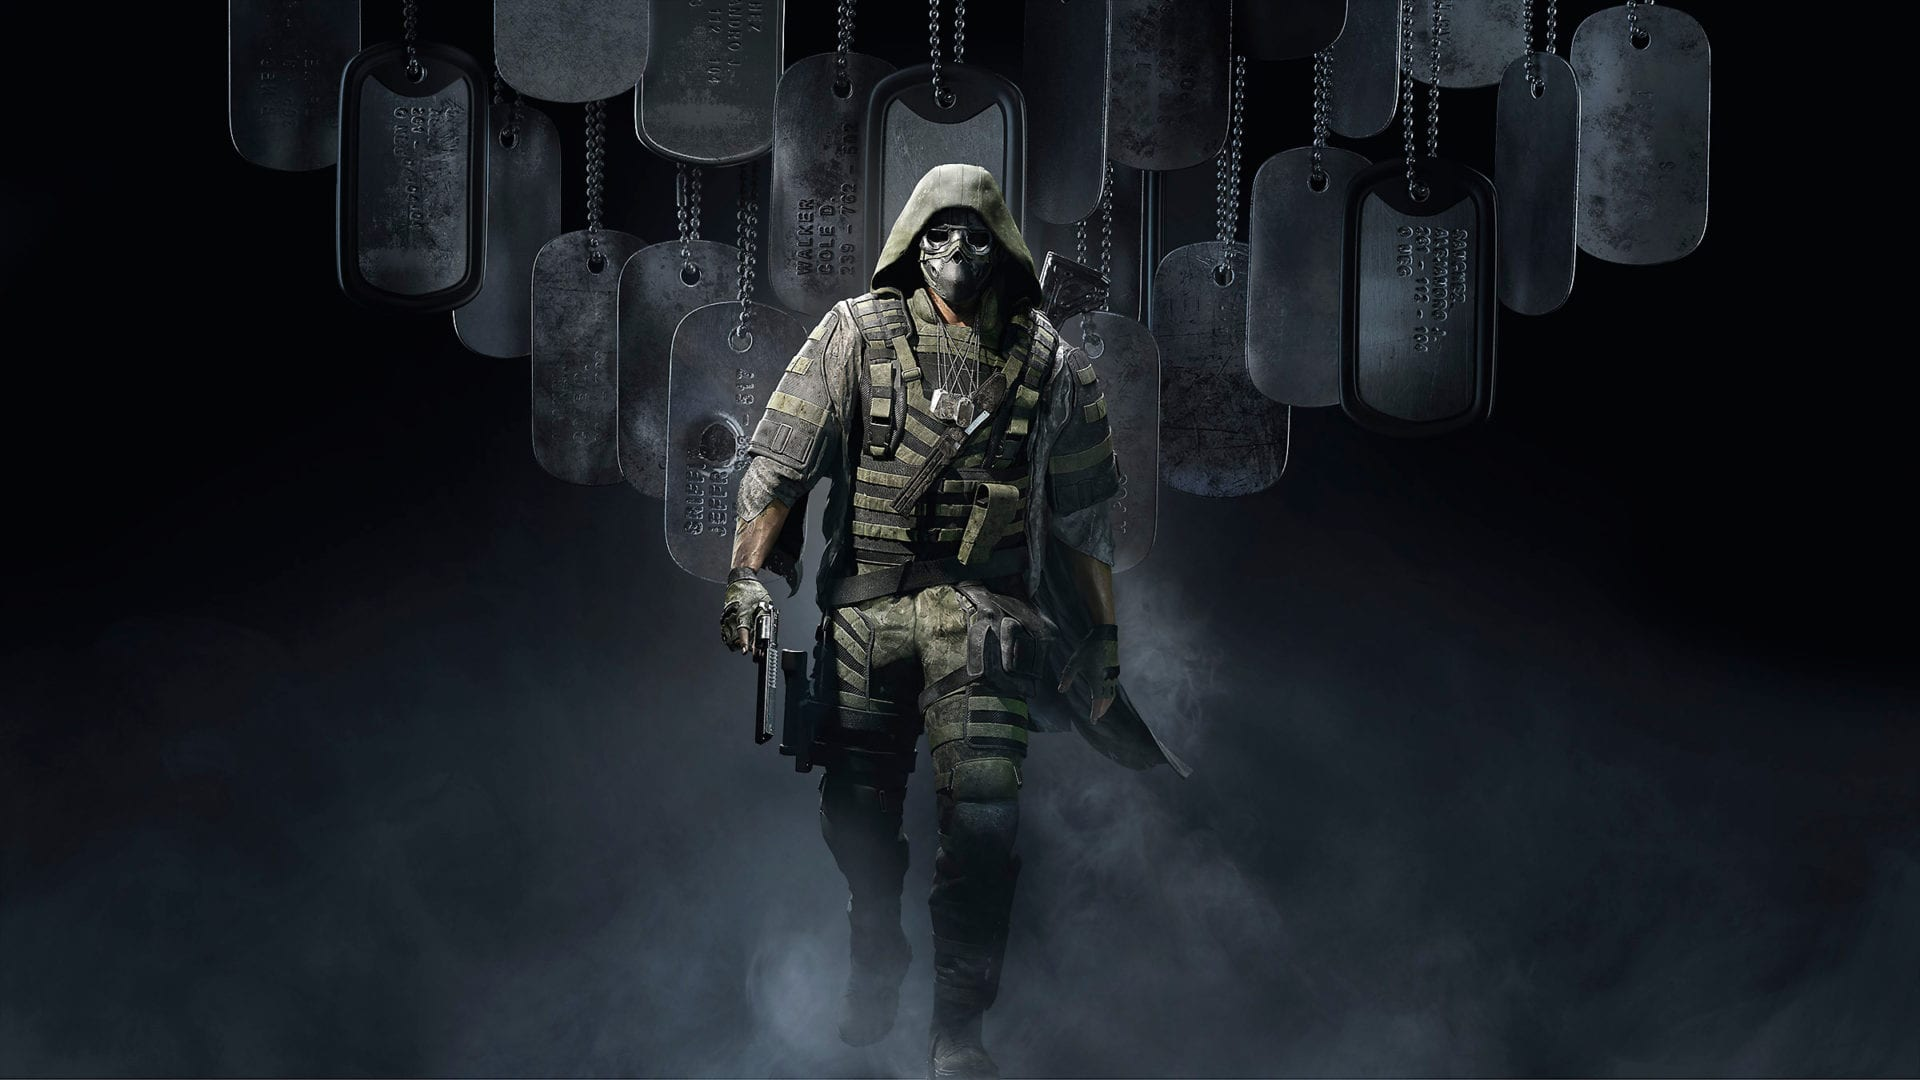 ghost recon breakpoint, how to use binoculars and